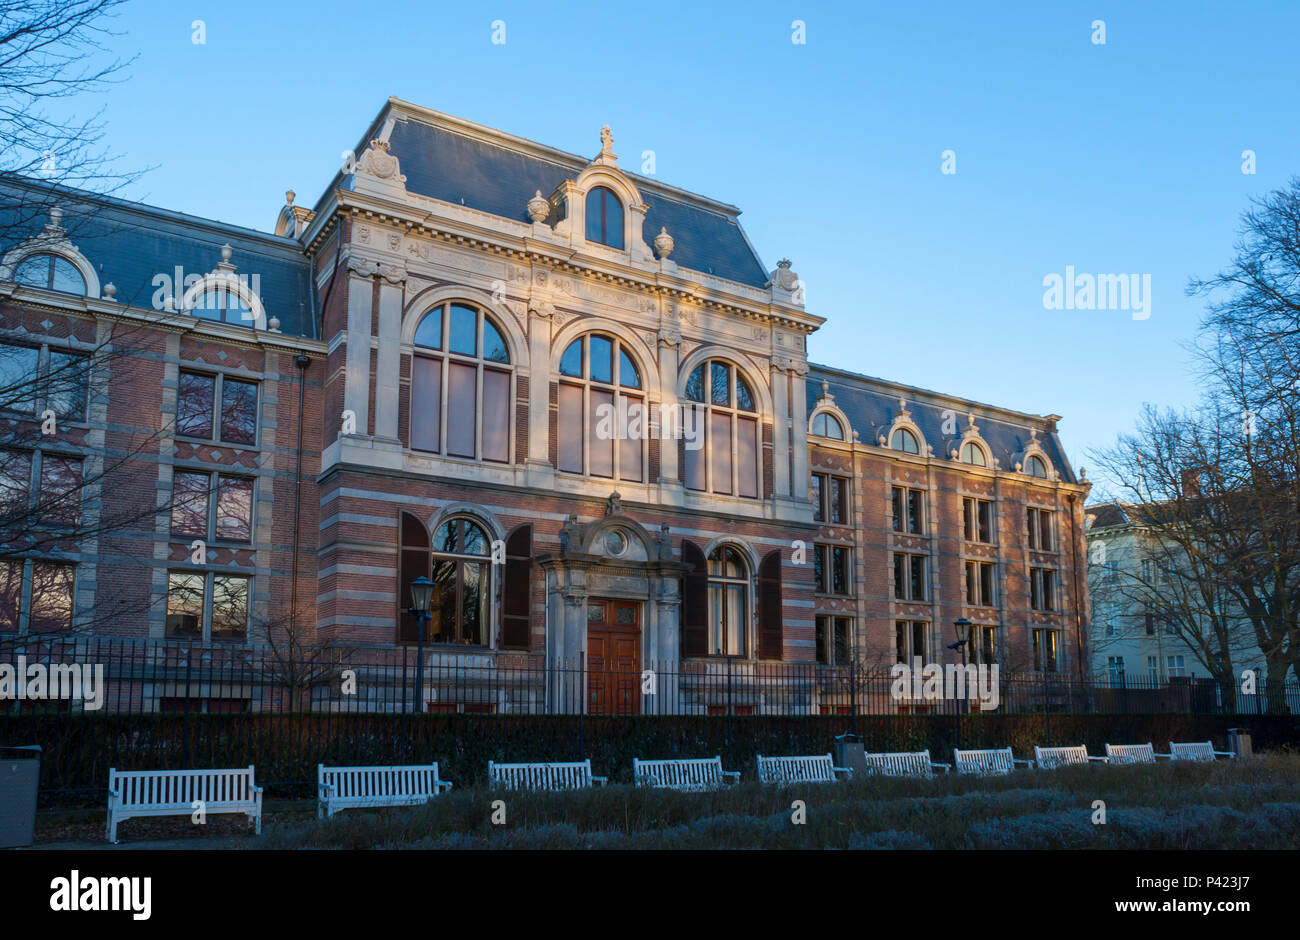 The neoclassical mansion housing the Royal Collections of the Netherlands. Koninklijke Verzamelingen, Den Haag, Netherlands Stock Photo